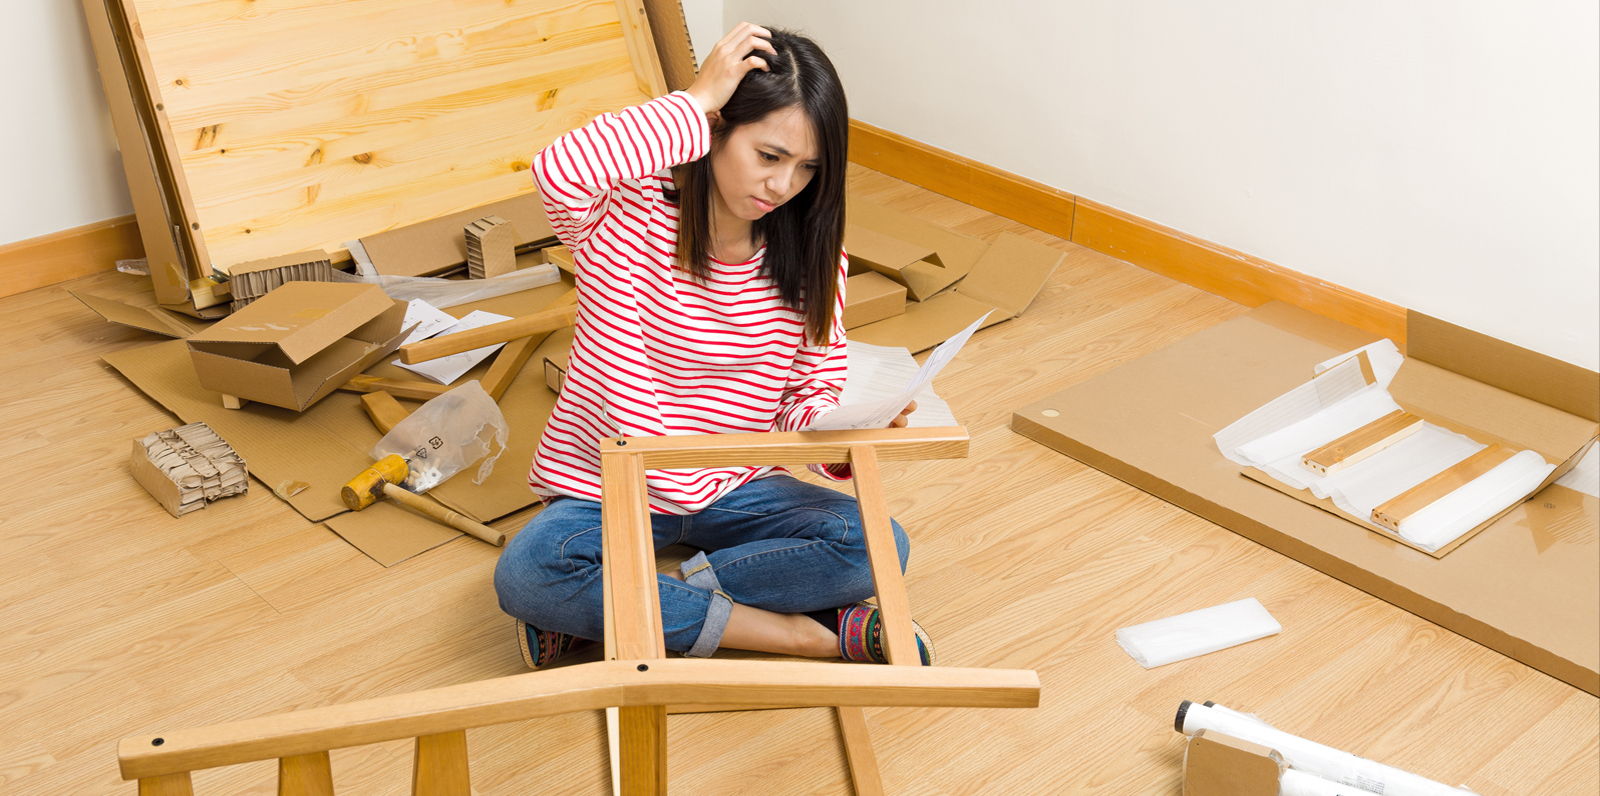 Tips from the internet on assembling ikea furniture and for Someone to assemble ikea furniture